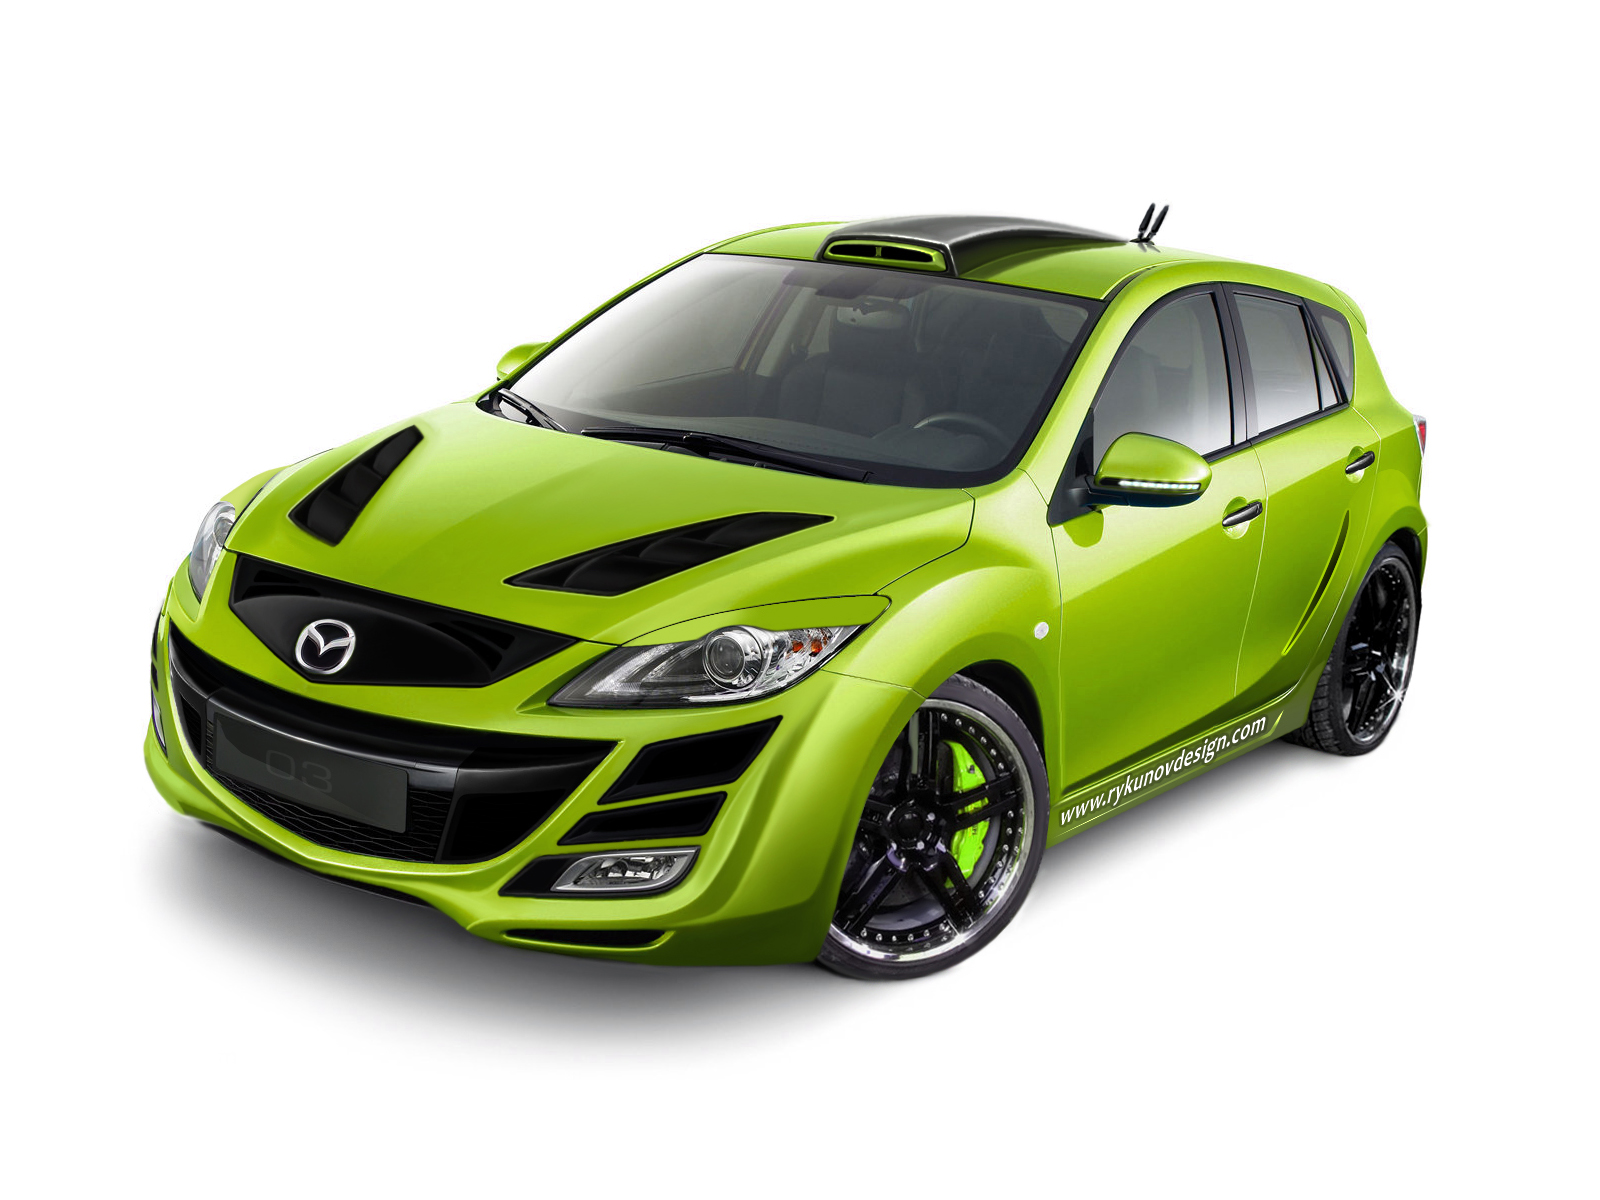 Mazda Green 6 Car Desktop Wallpaper